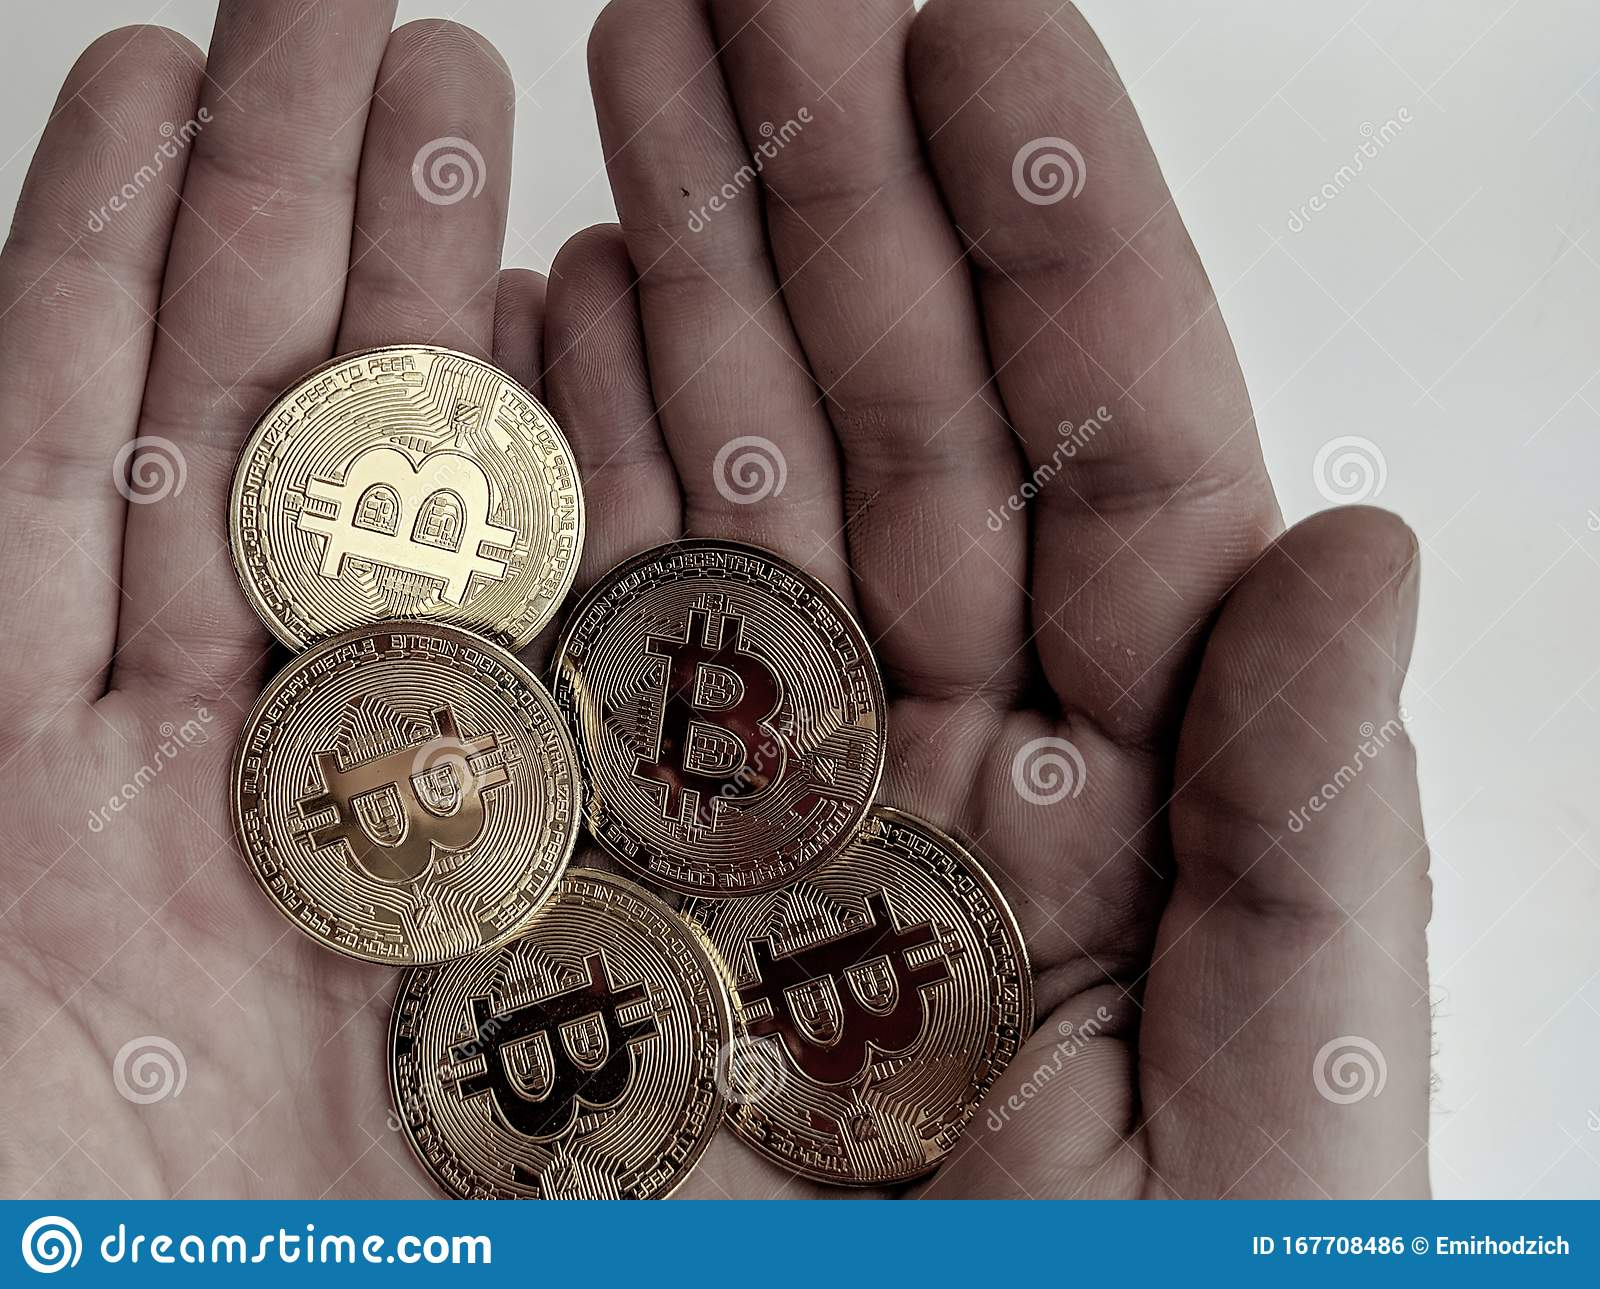 Man Golding Bitcoins In Hand As A Sign Of Digital Gold ...